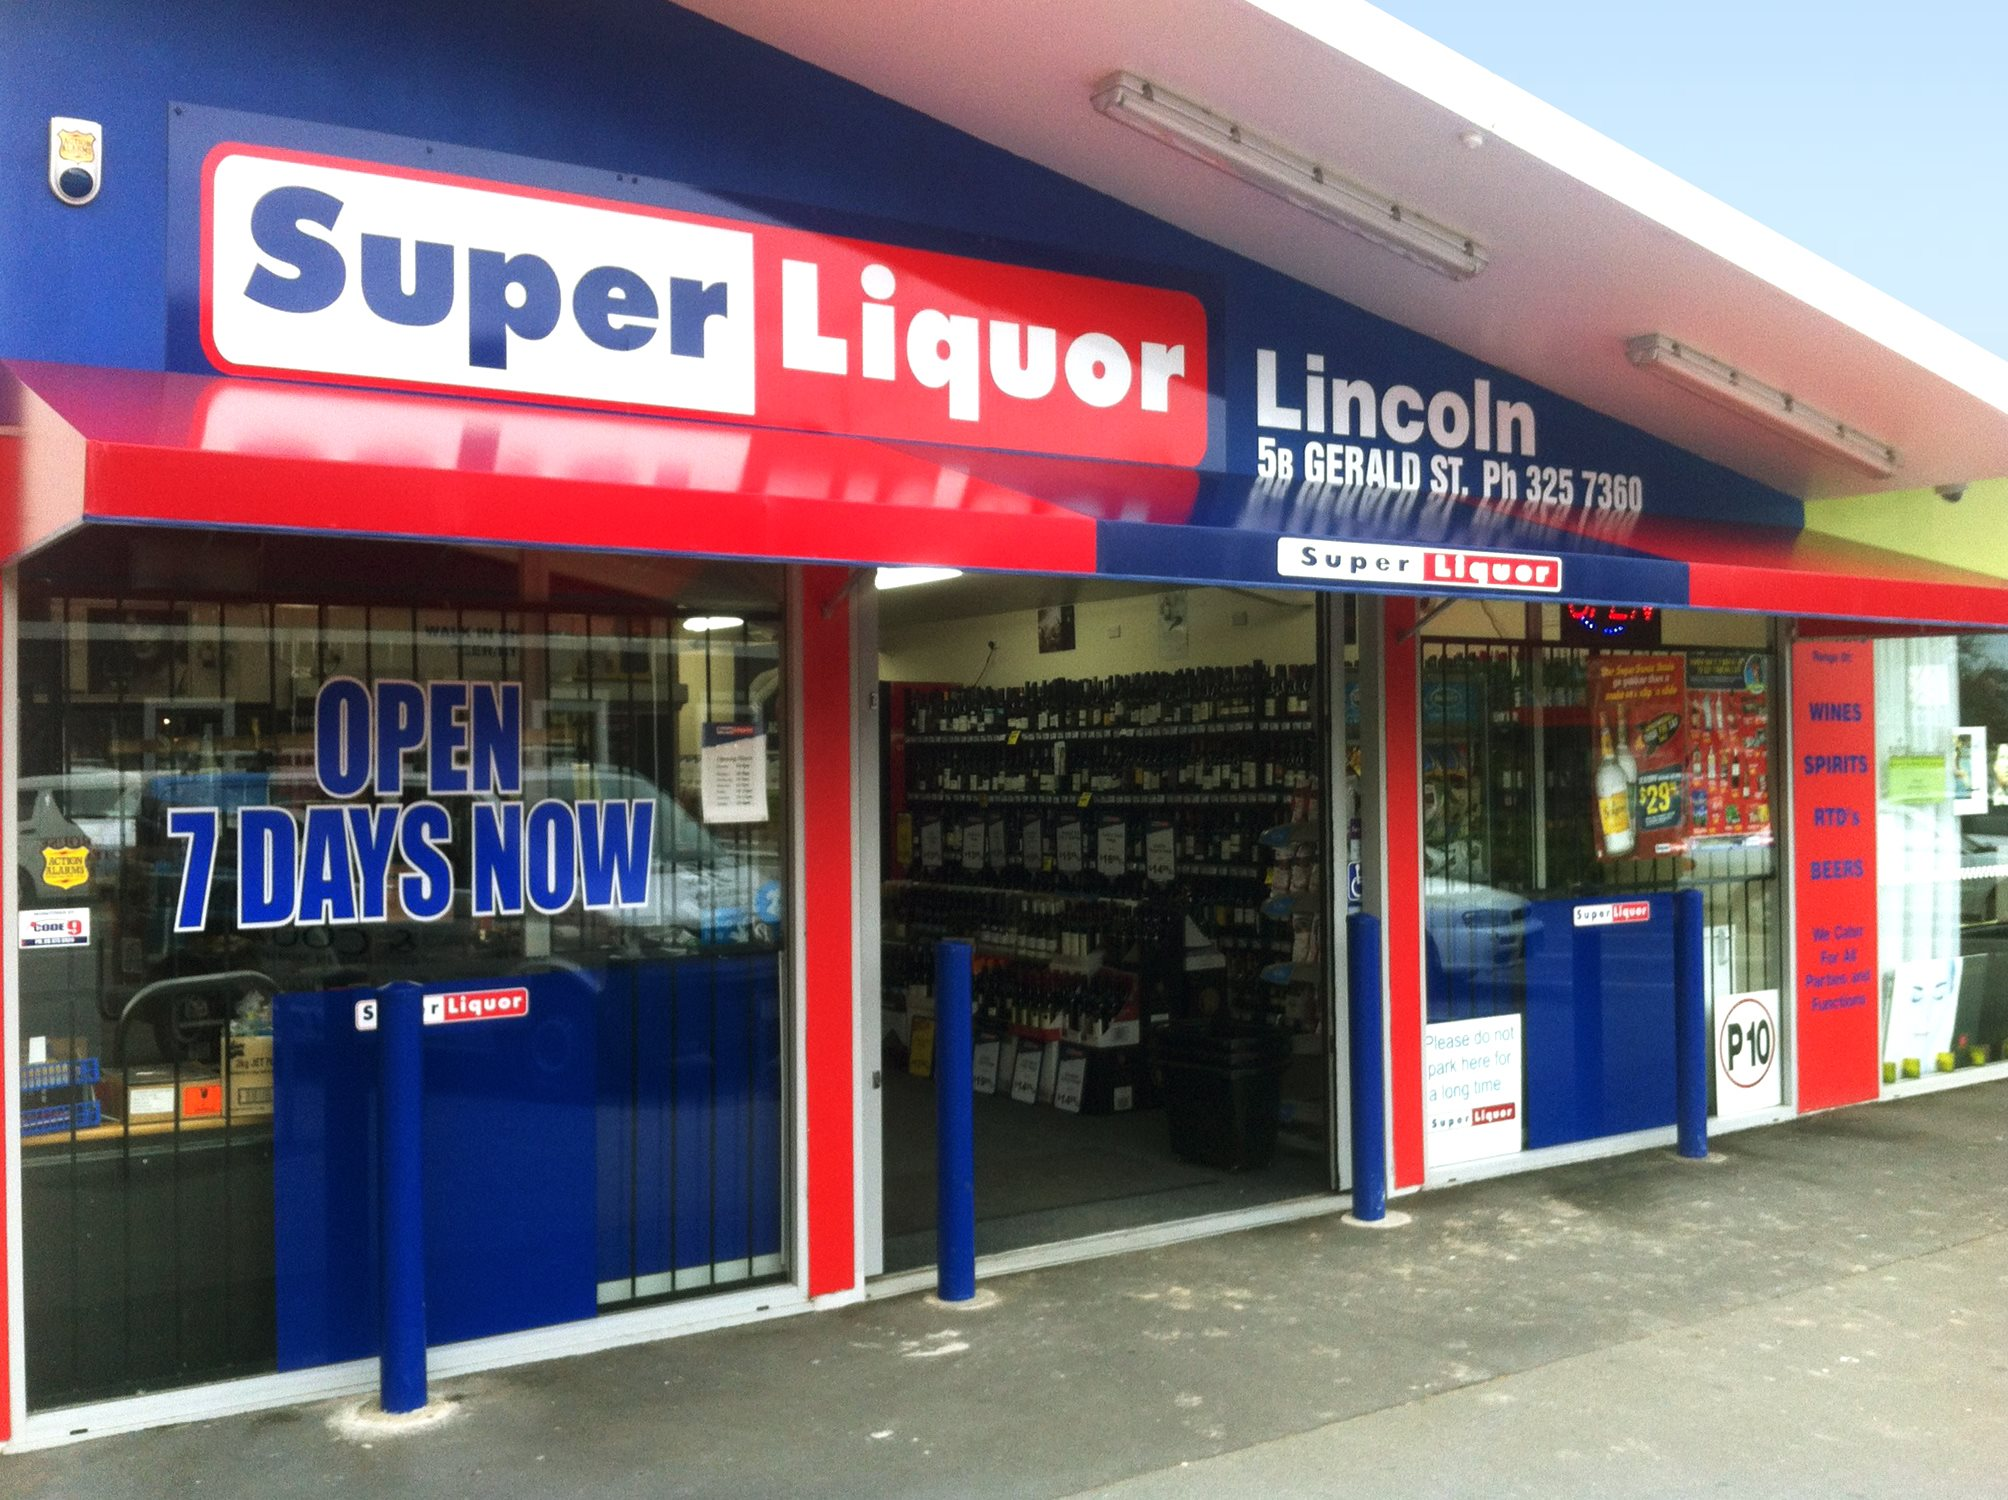 Awnings shading outside of super liquor shop